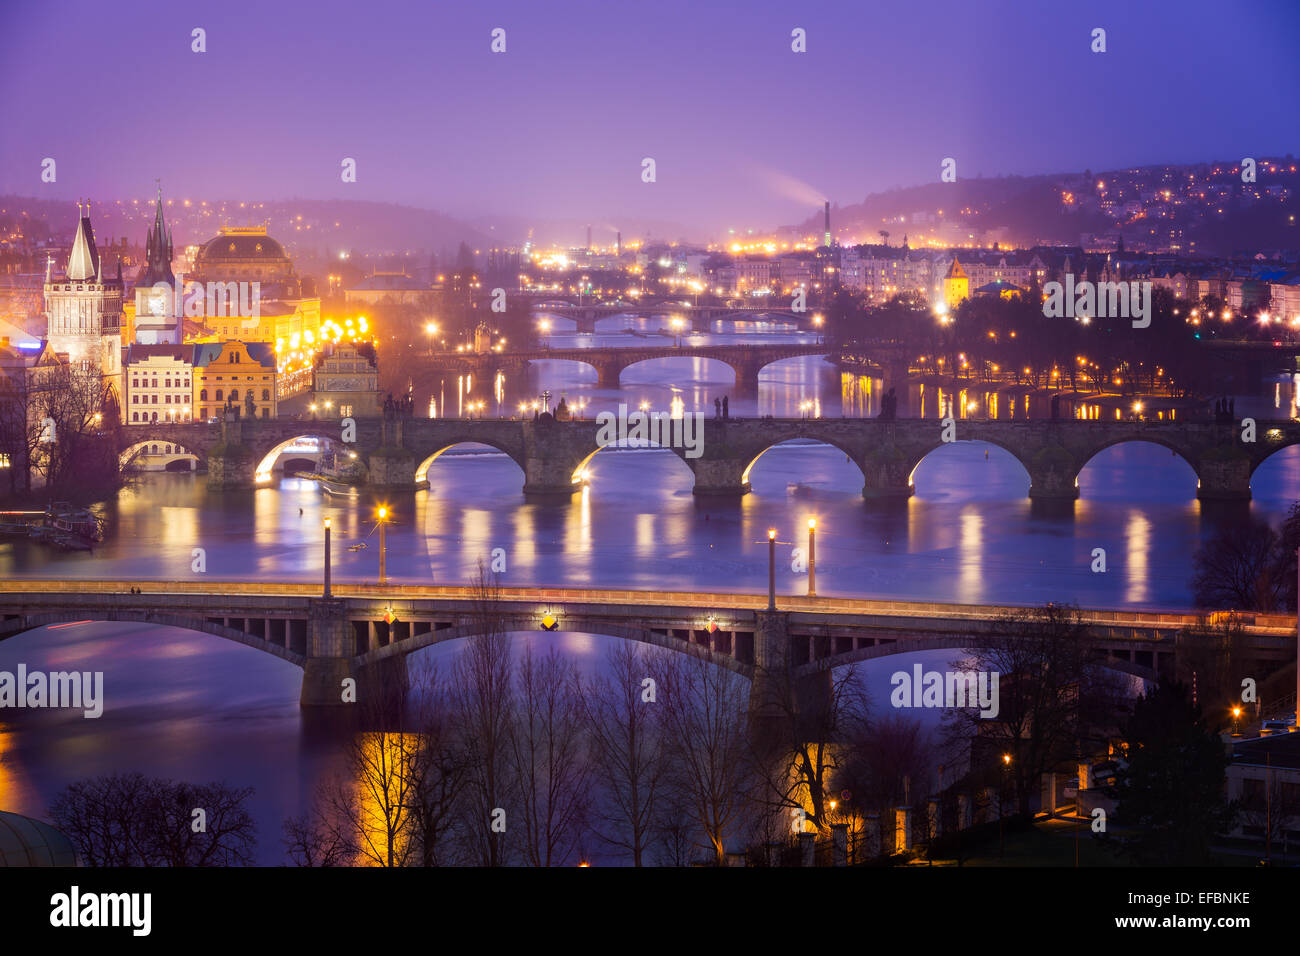 Vltava (Moldau) River at Prague with Charles Bridge at dusk, Czech Republic - Stock Image